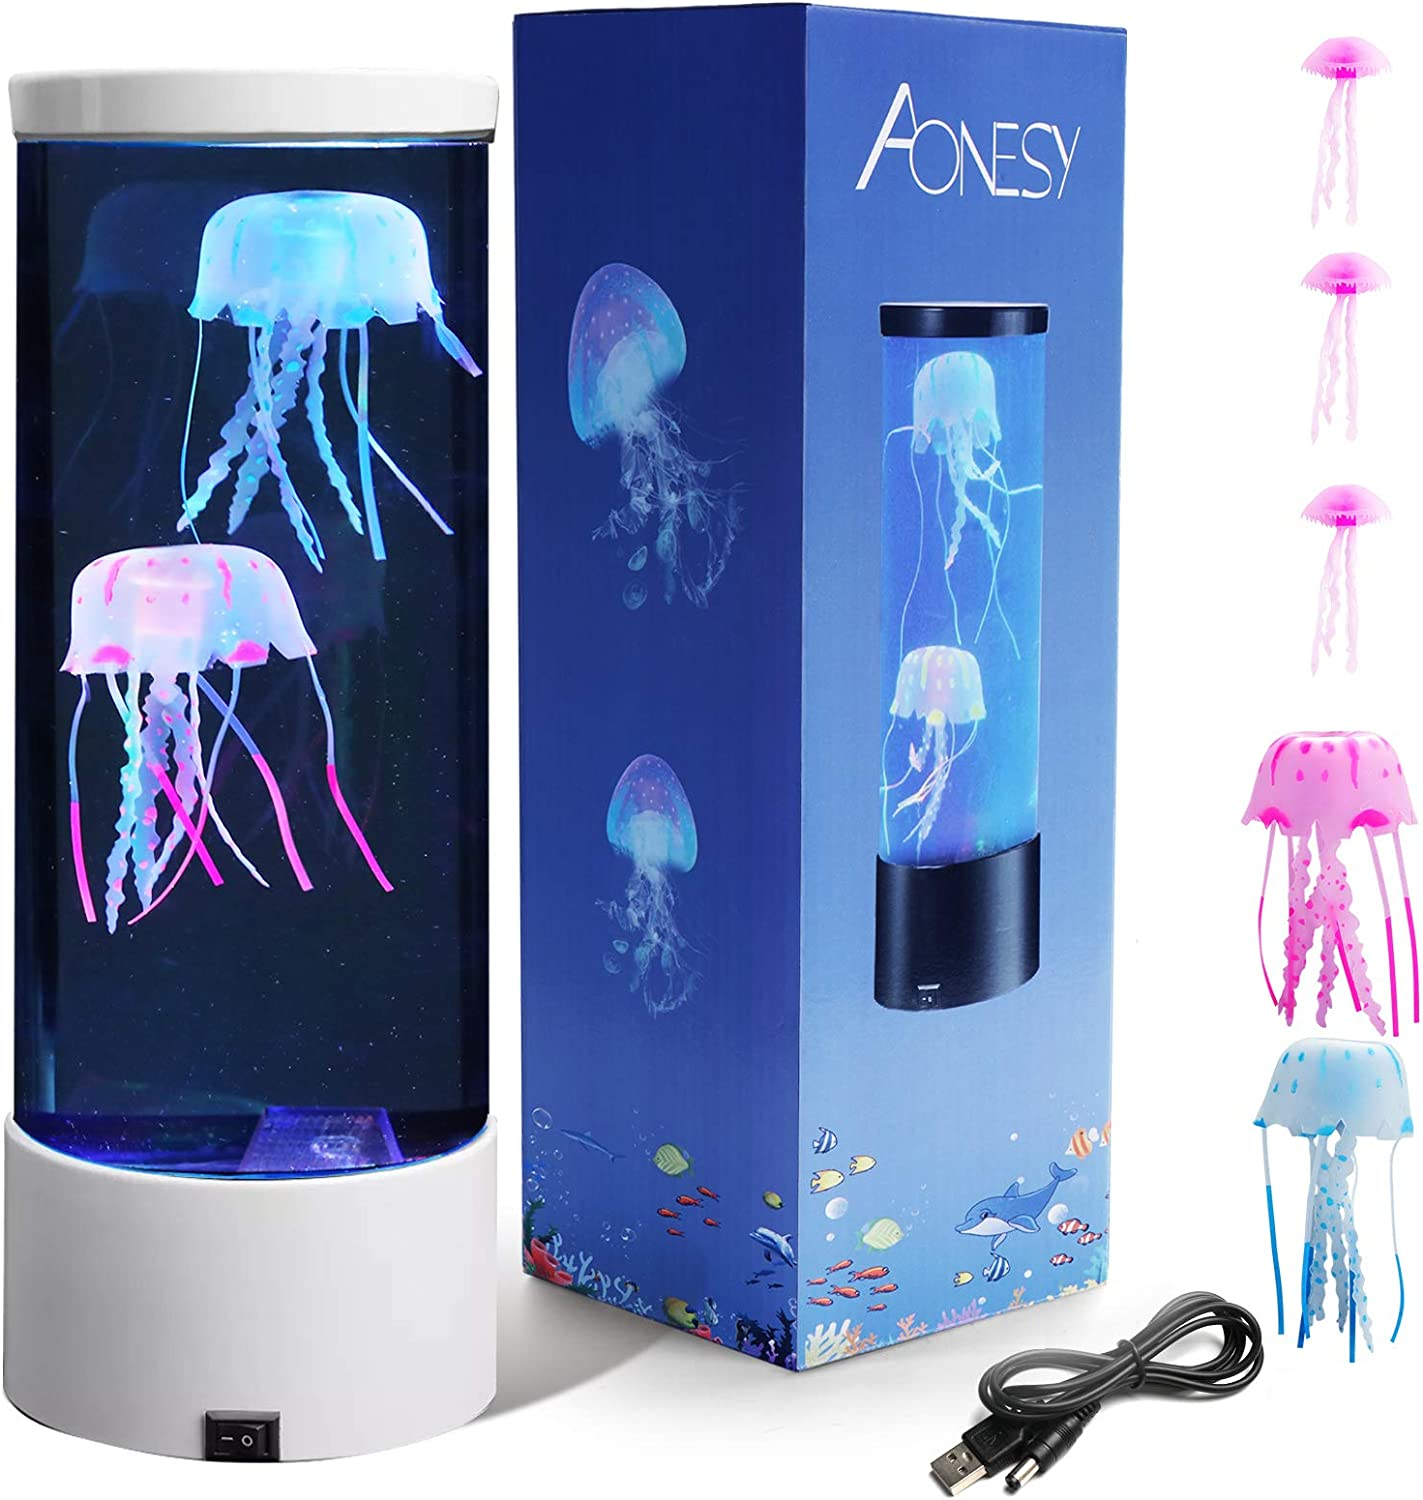 Jellyfish Lamp with Color Changing Lights-Artificial Mini Aquarium Night Light Romantic Gifts for Kids Men Women Dad Mom-Home Office Room Desk Decor Lamp for Christmas Birthday (White)